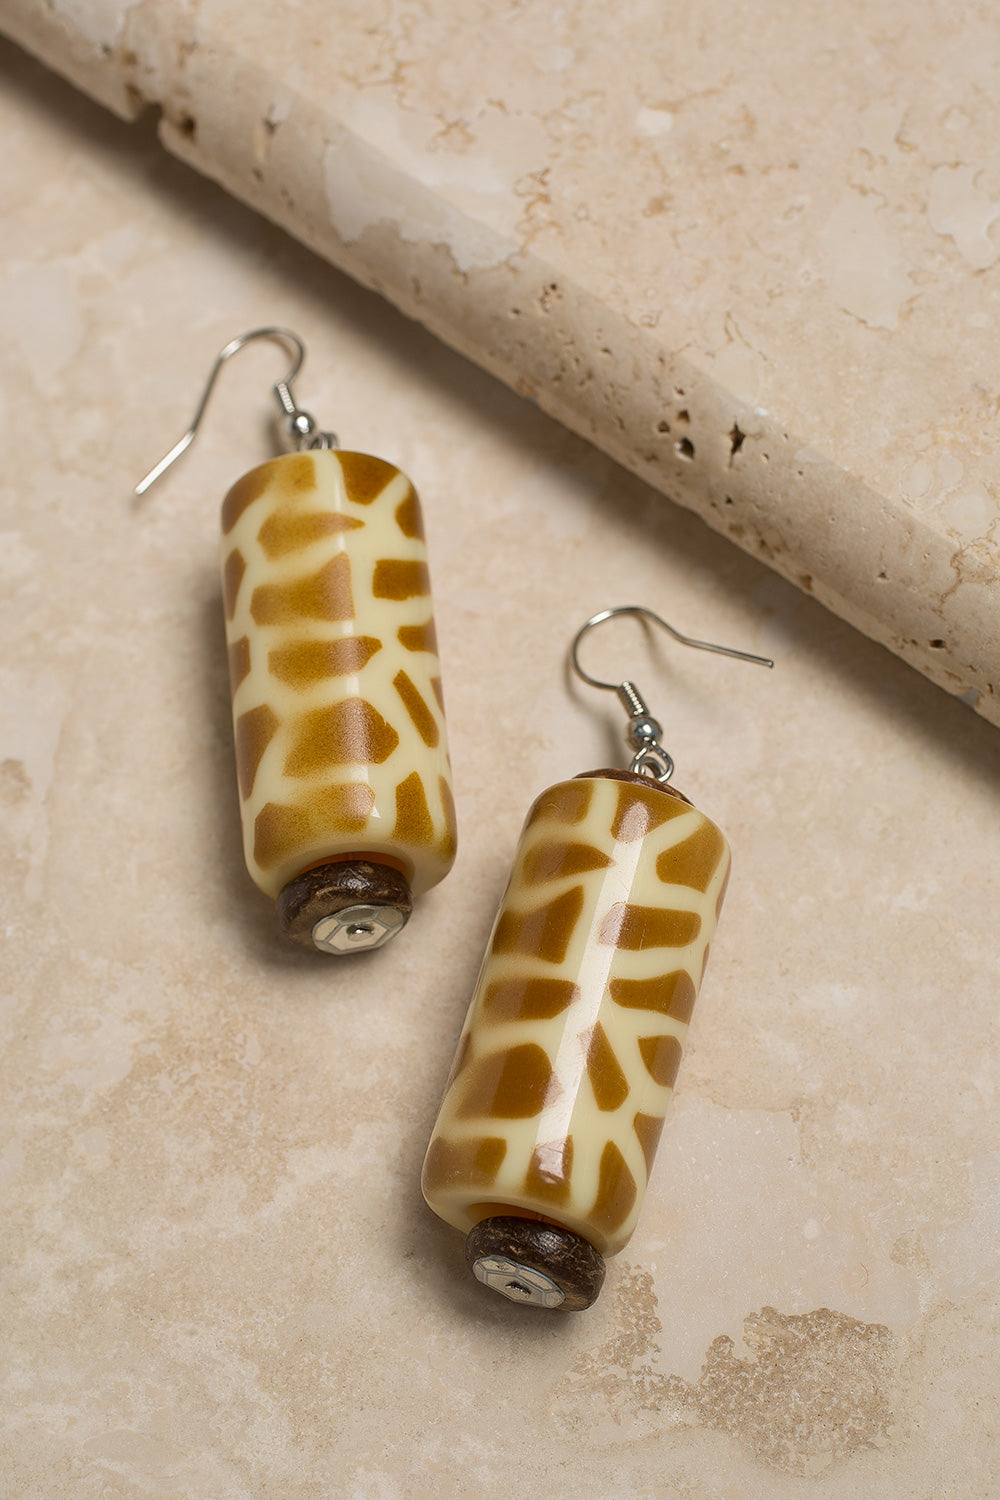 Type 3 Laughing Giraffe Earrings